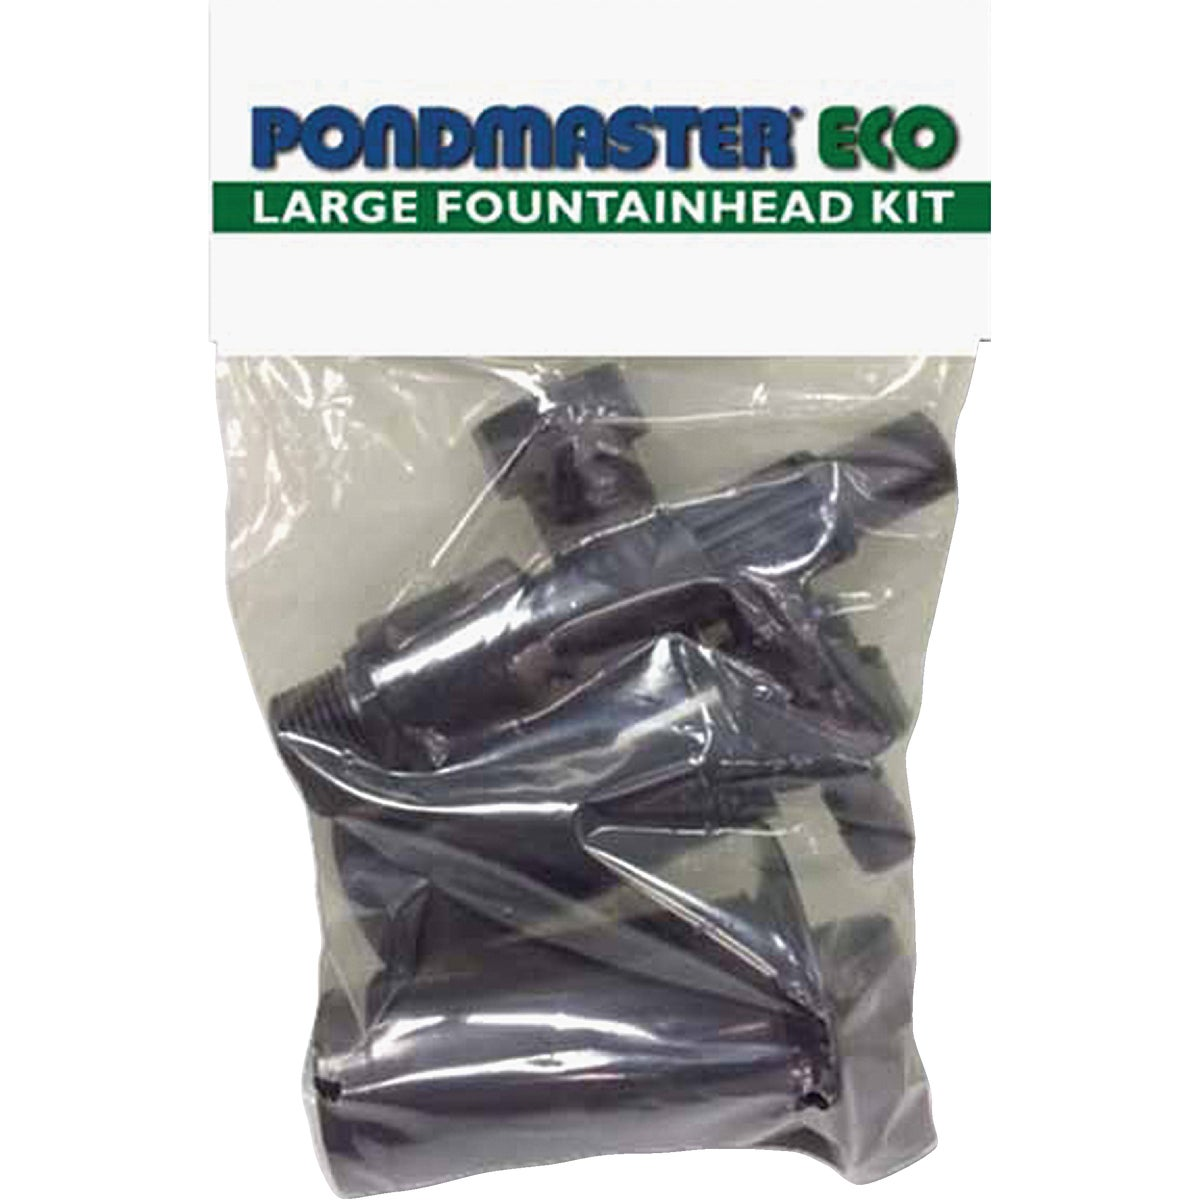 LARGE NOZZLE KIT